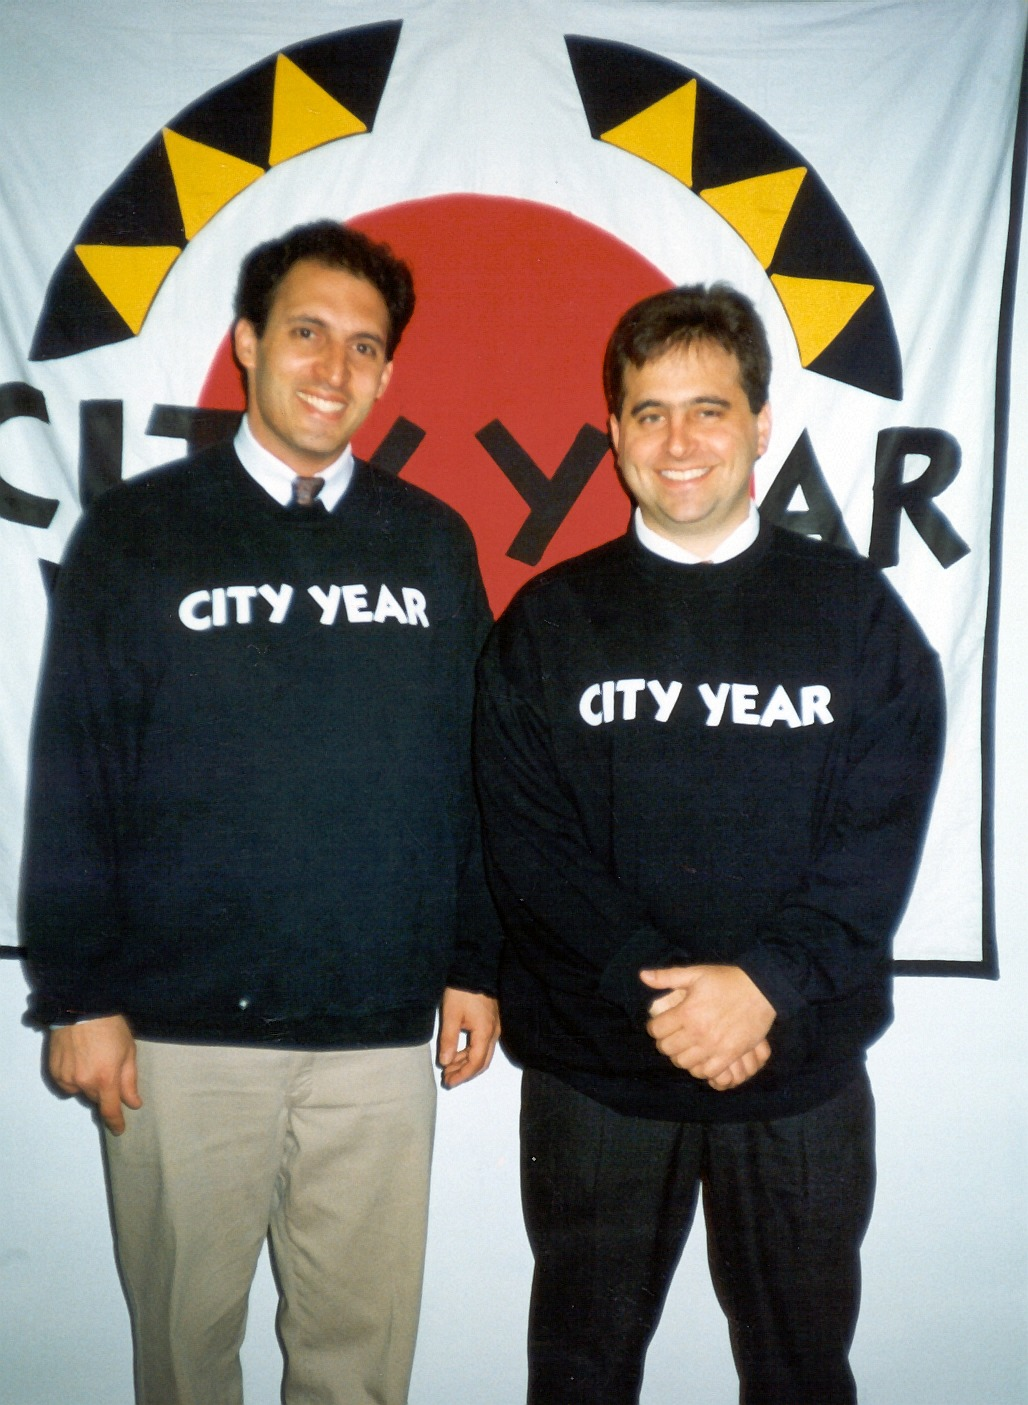 City Year co-founders  Alan Khazei  and  Michael Brown  in original City Year sweatshirts. (1988)